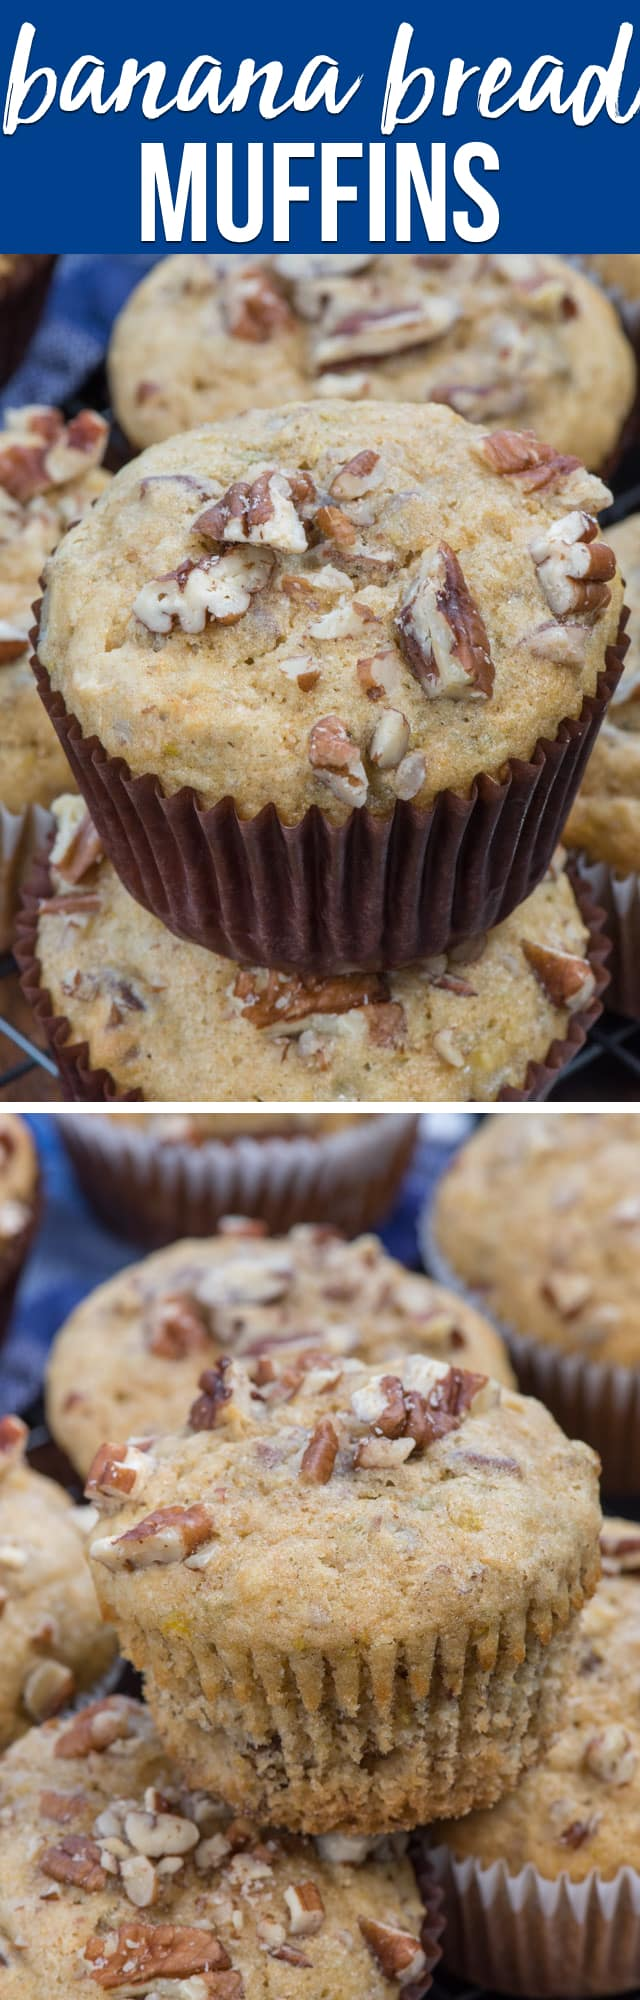 Banana Bread Muffins are so easy to make! This recipe is my favorite banana bread recipe made into banana nut muffins, perfect for breakfast or brunch!